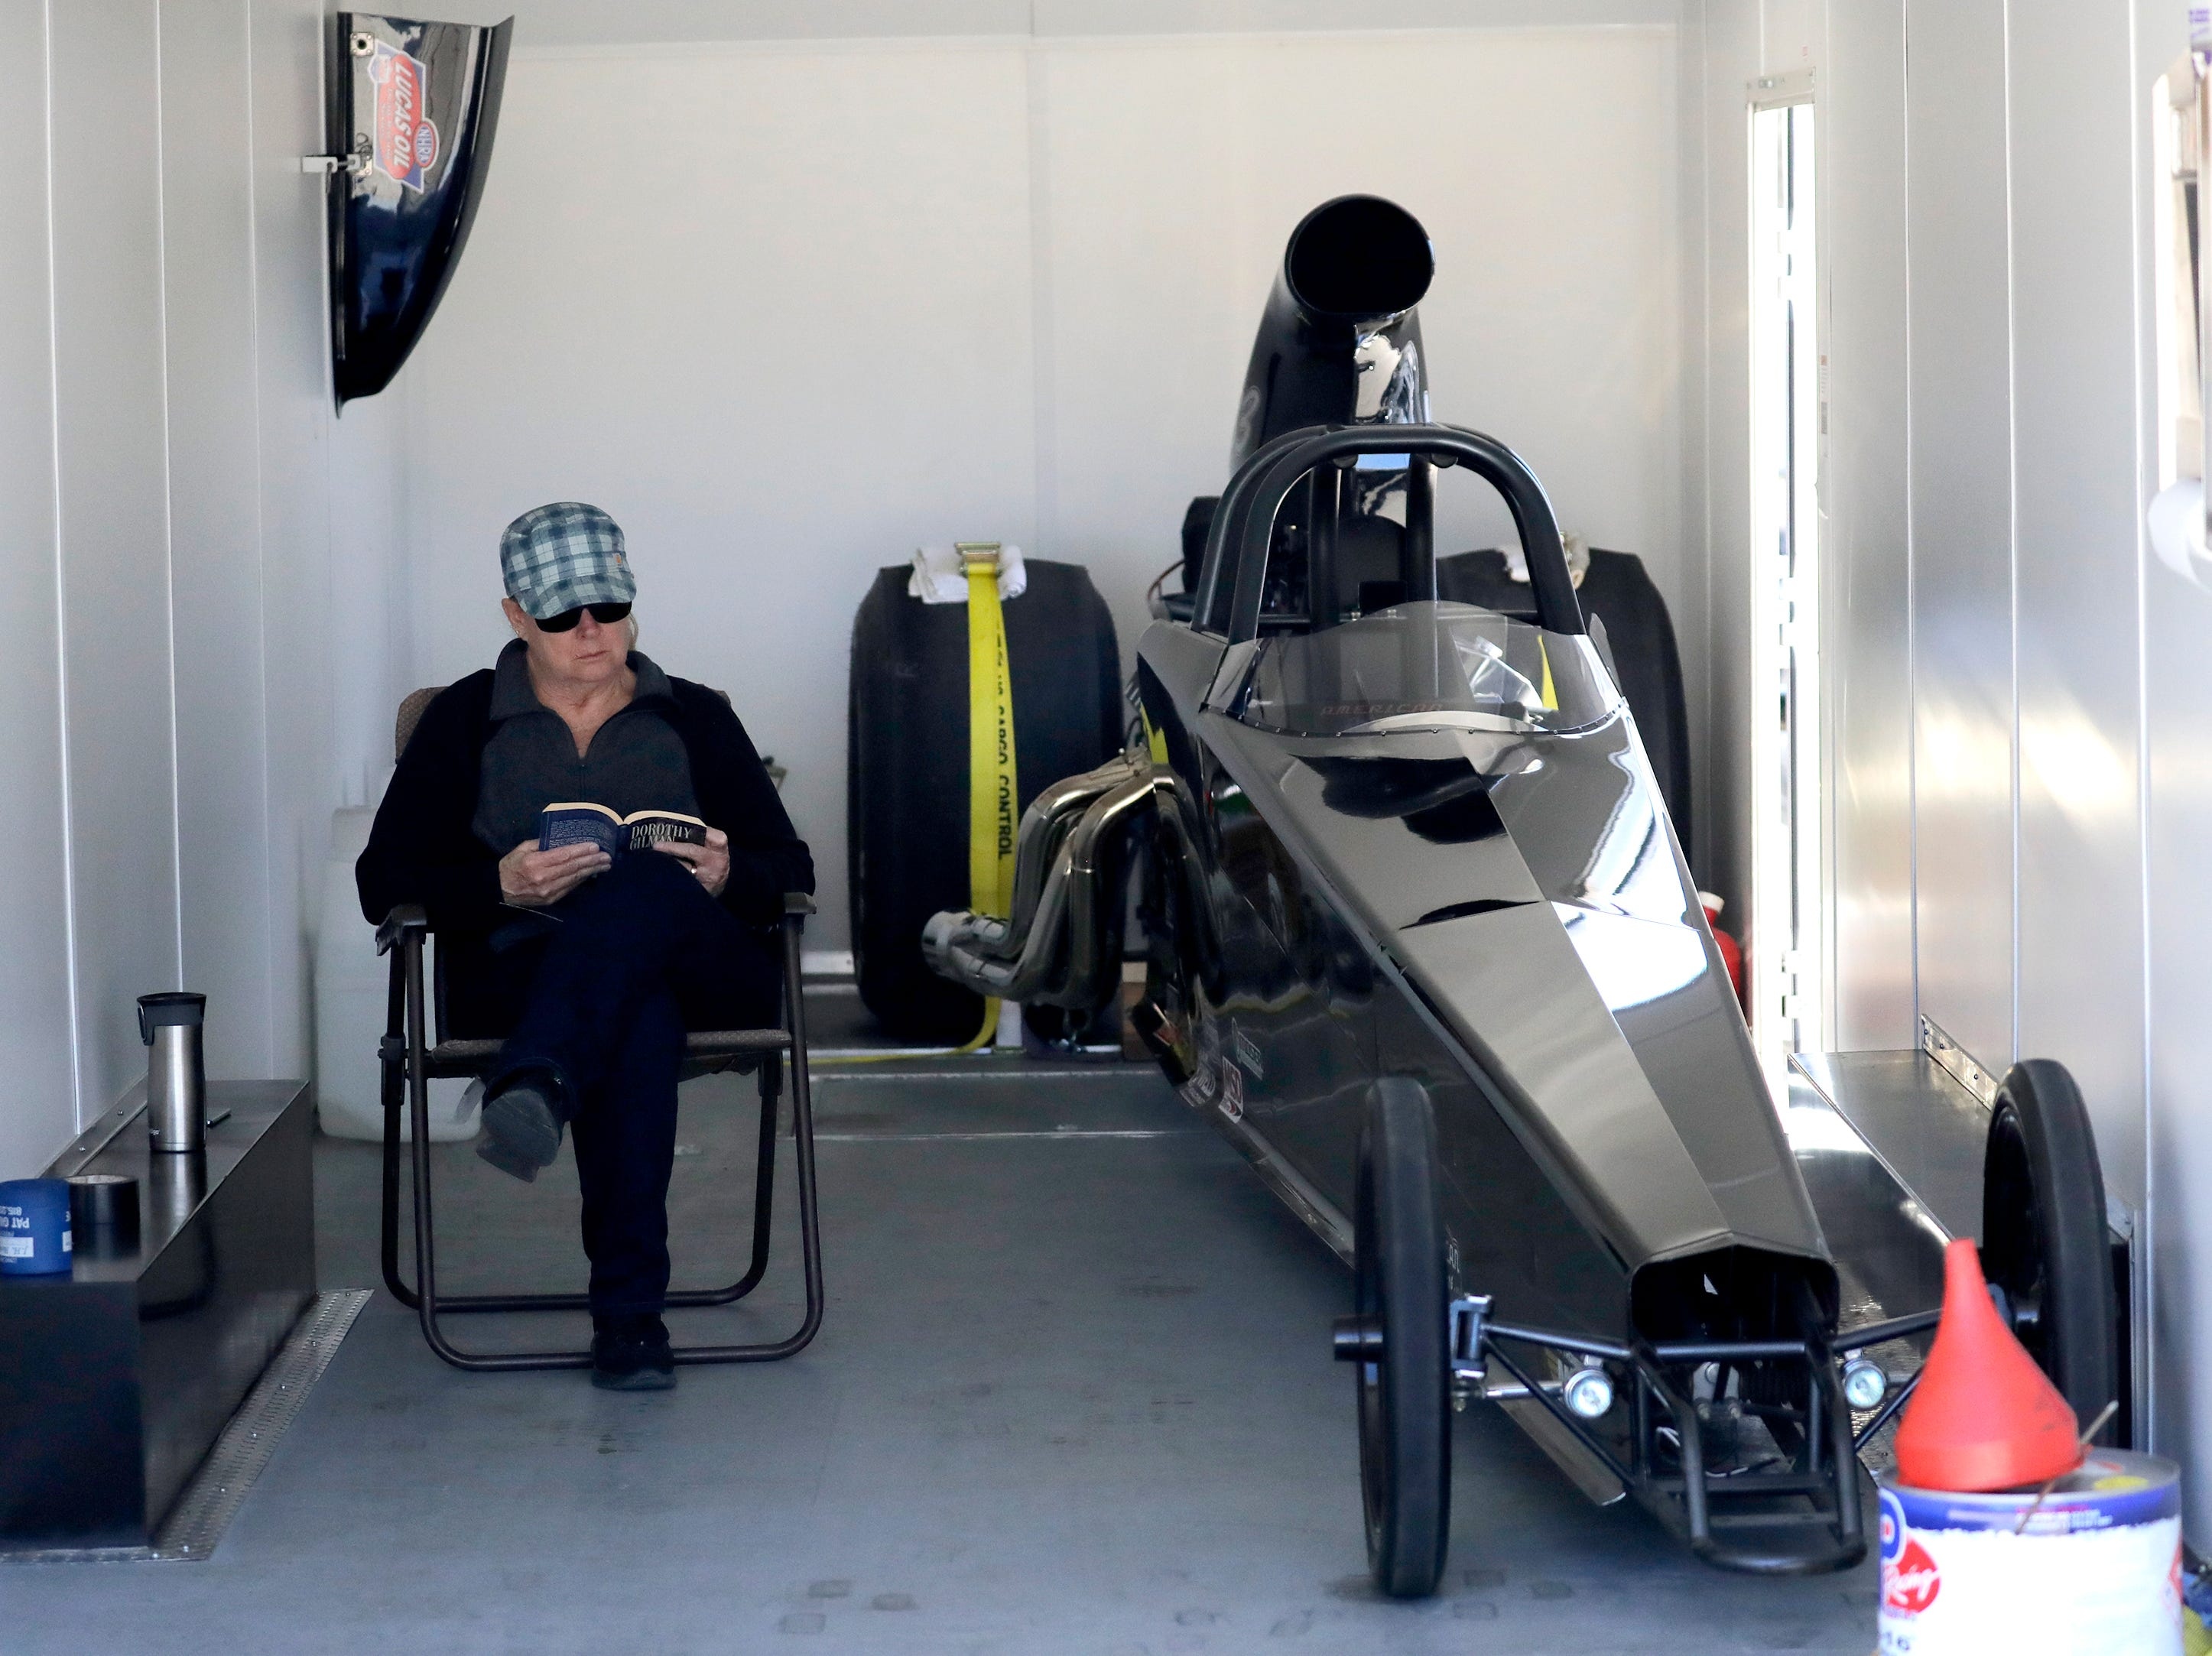 Mary Van Straten of De Pere reads a book inside her trailor while her husband works on a second dragster outside during the Wisconsin International Raceway Strip Test & Tune event Saturday, April 19, 2019, in Kaukauna, Wis. Drivers spent the day getting safety inspections, tune ups and test runs on the track for the upcoming season.Dan Powers/USA TODAY NETWORK-Wisconsin